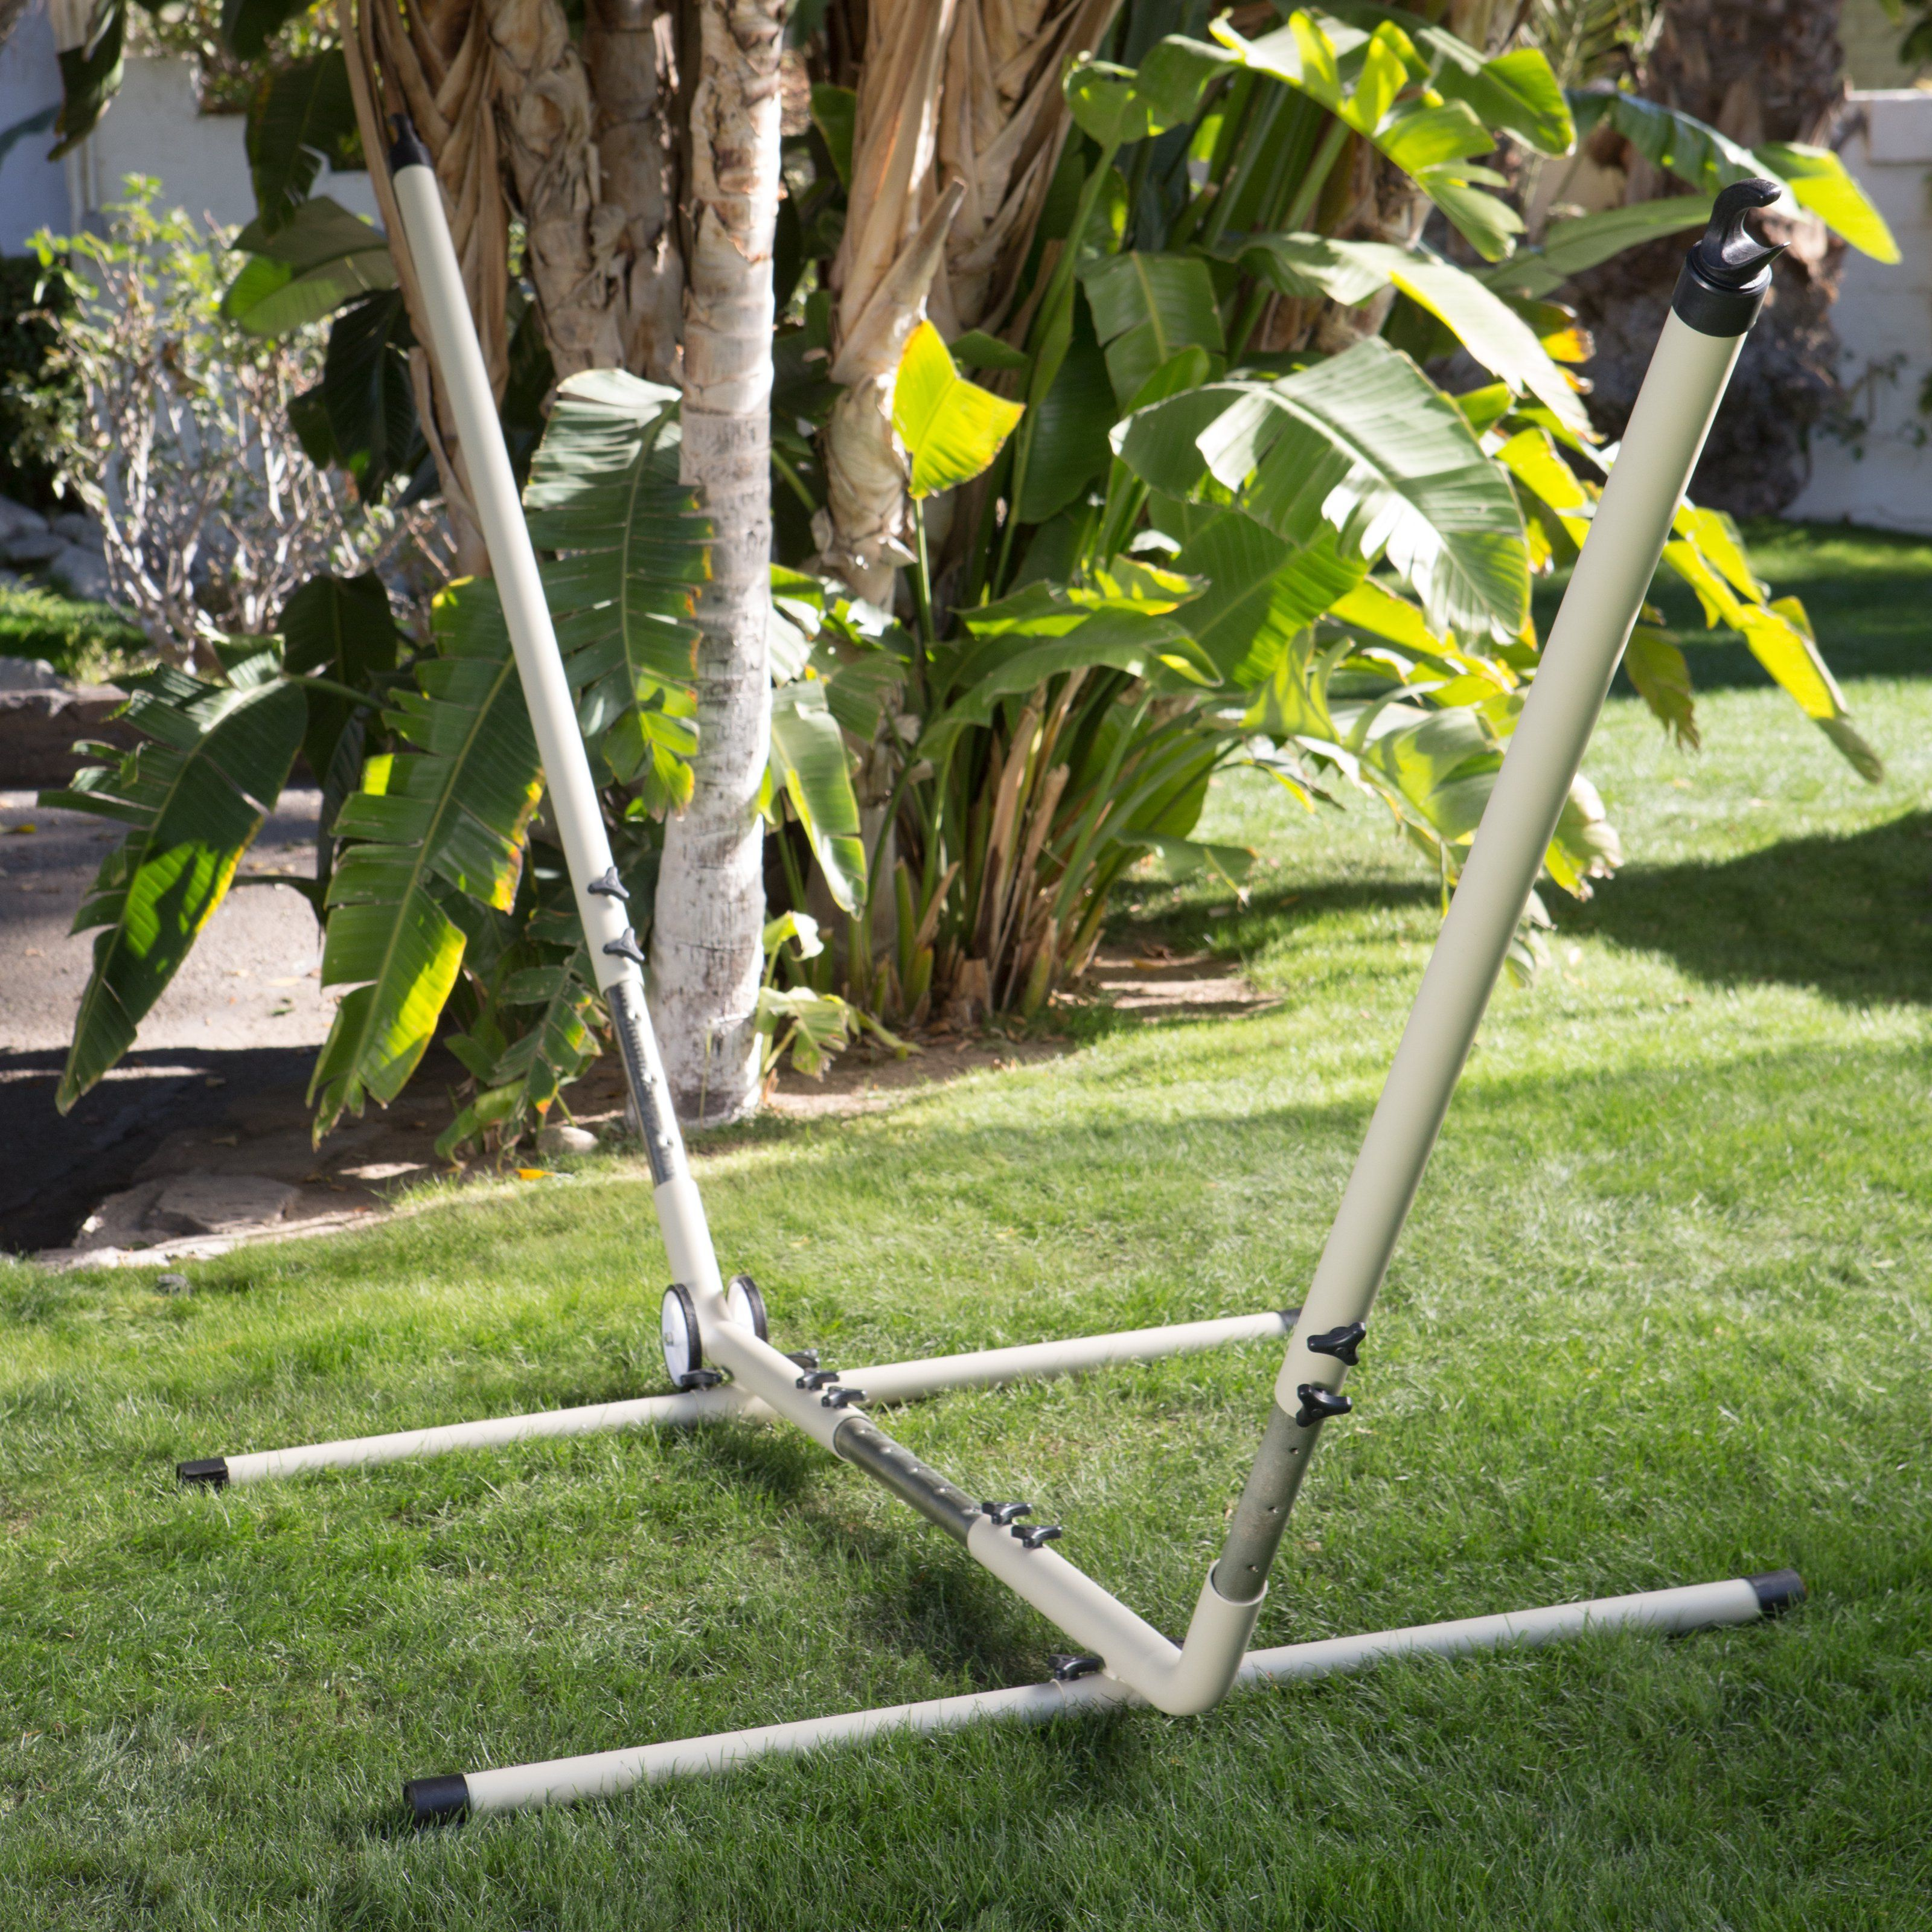 island bay adjustable hammock stand with wheels   14365 island bay adjustable hammock stand with wheels   14365   products      rh   pinterest